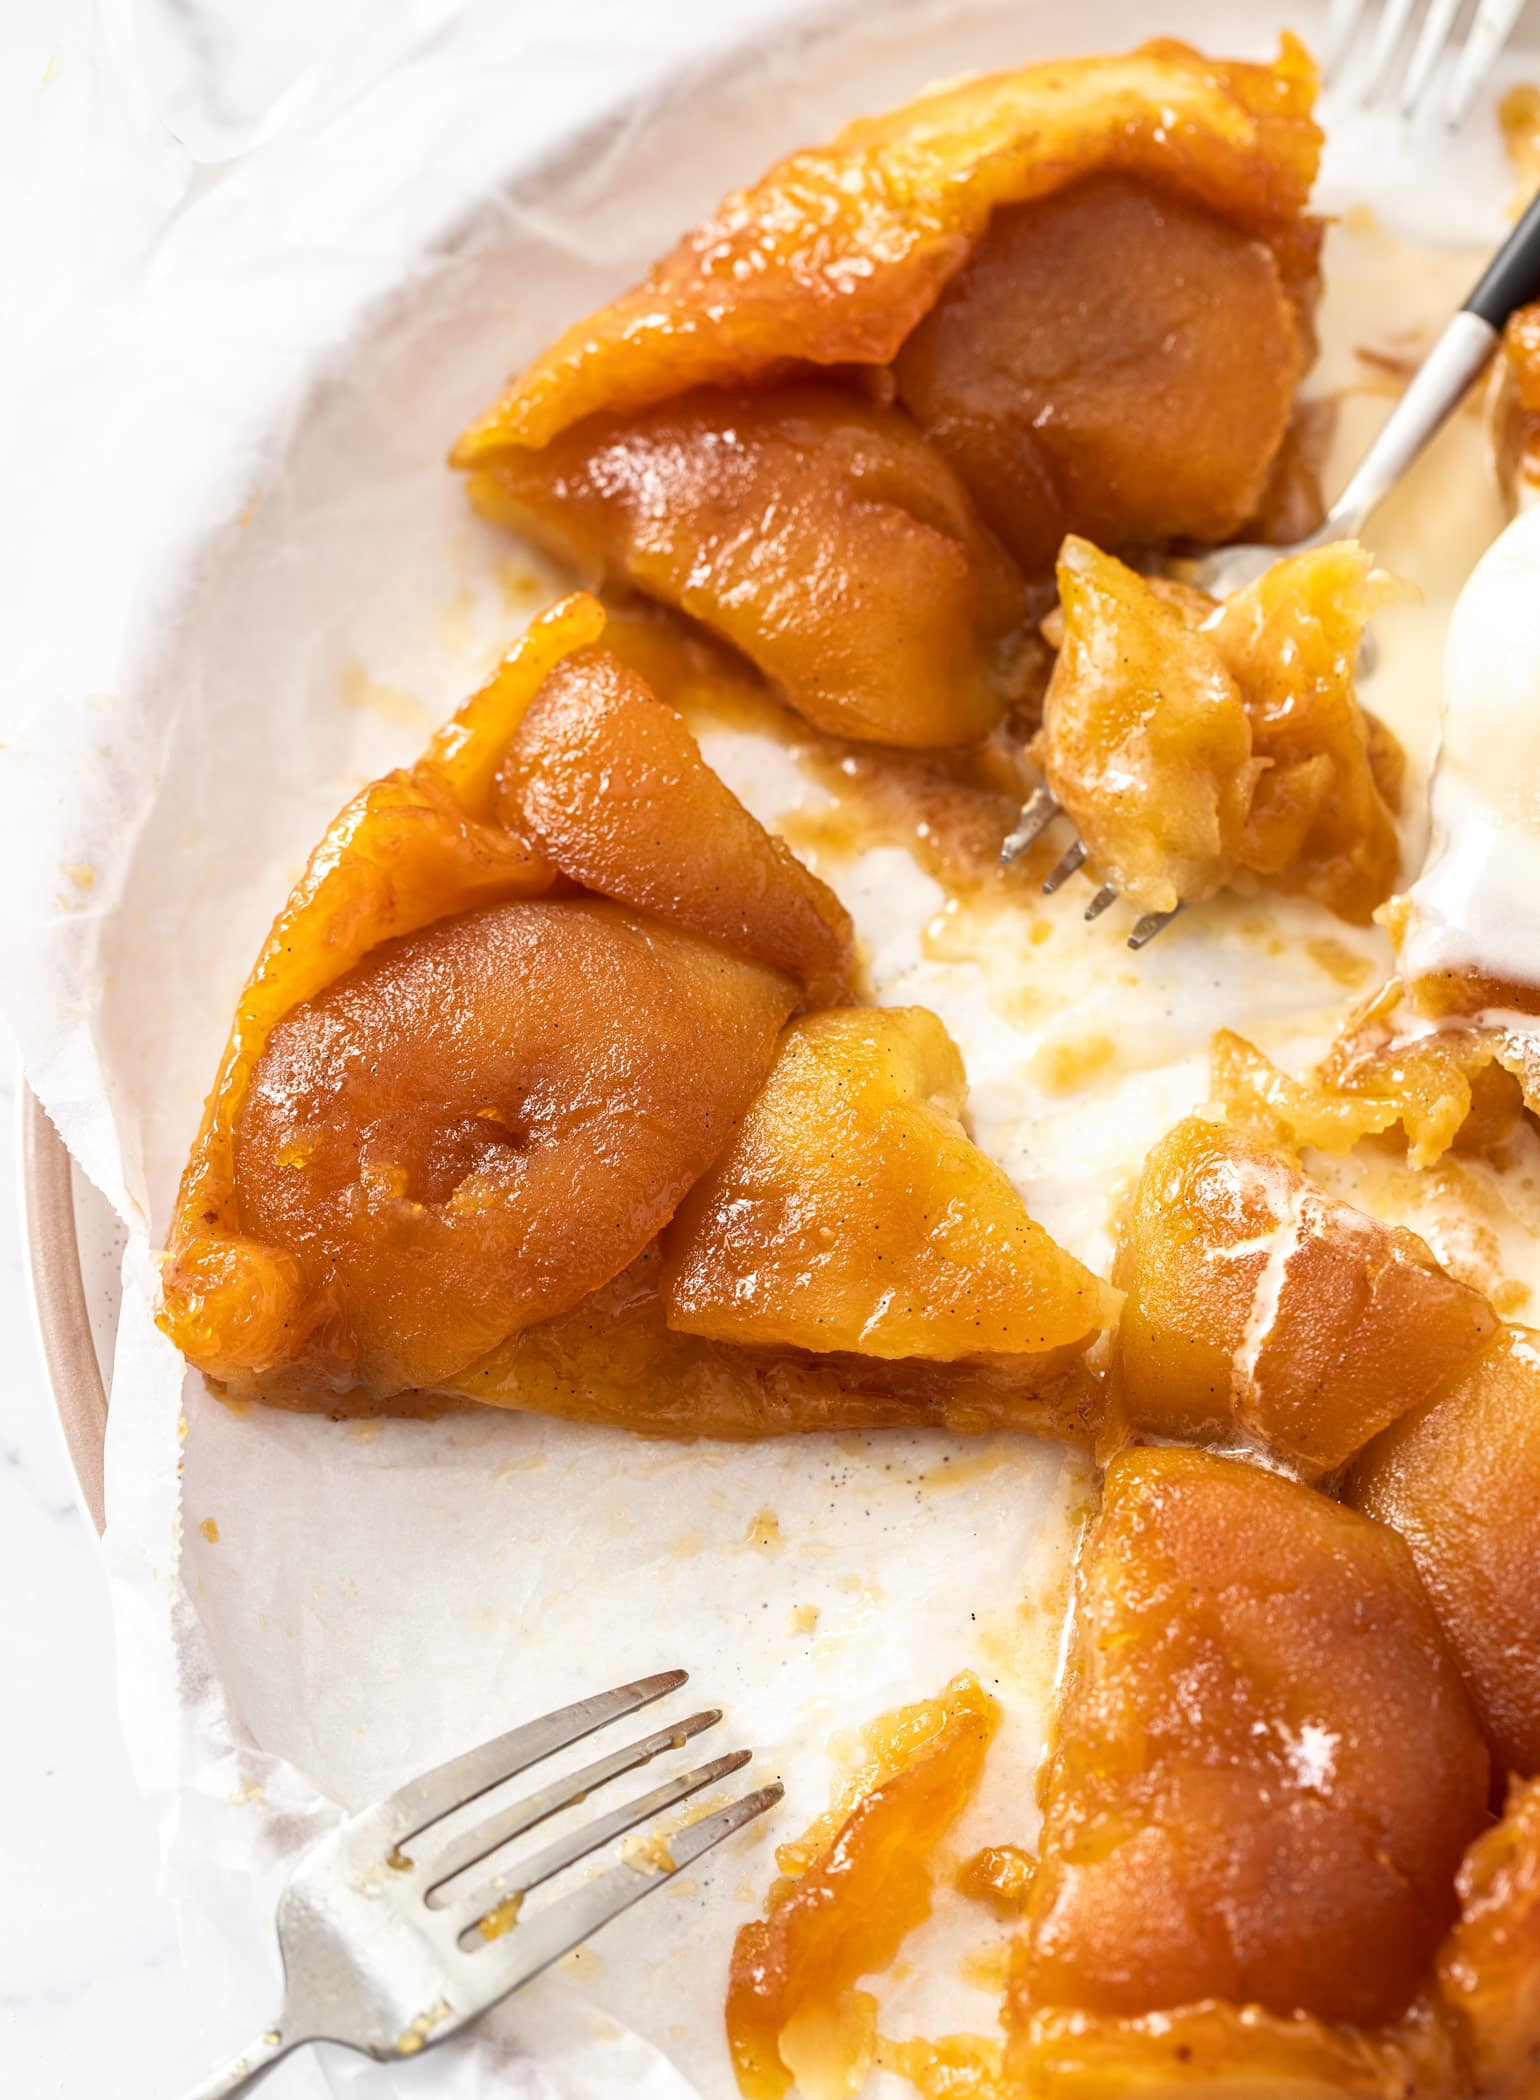 Closeup of a slice of apple tarte tatin with two forks